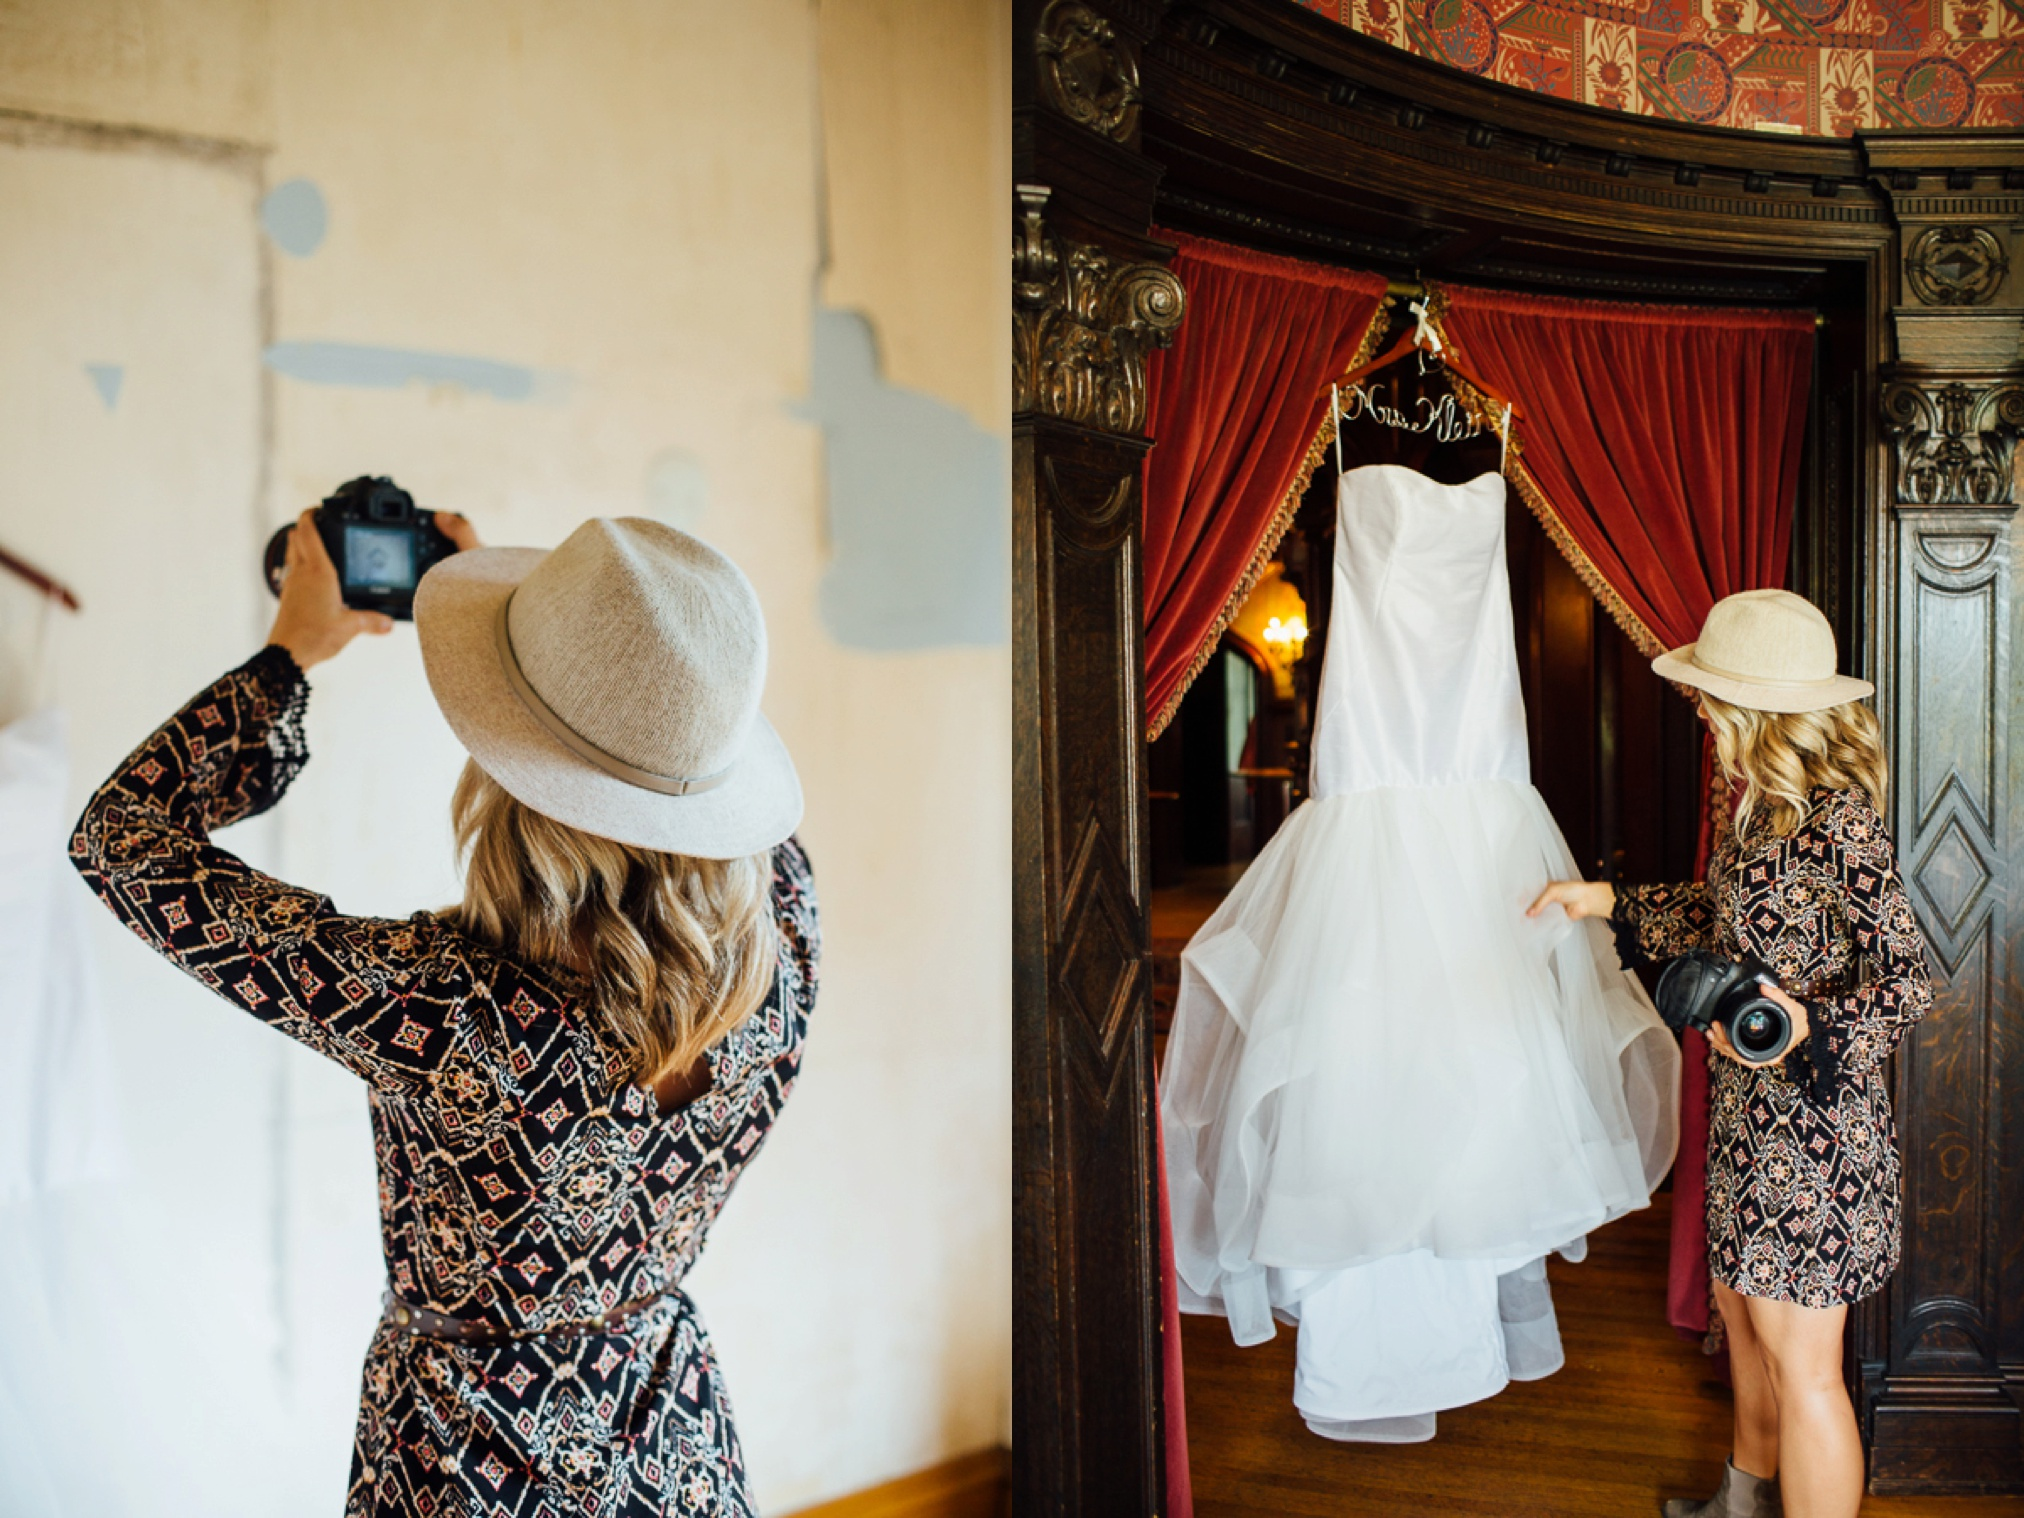 Every wedding we photograph the bride's lovely dress.